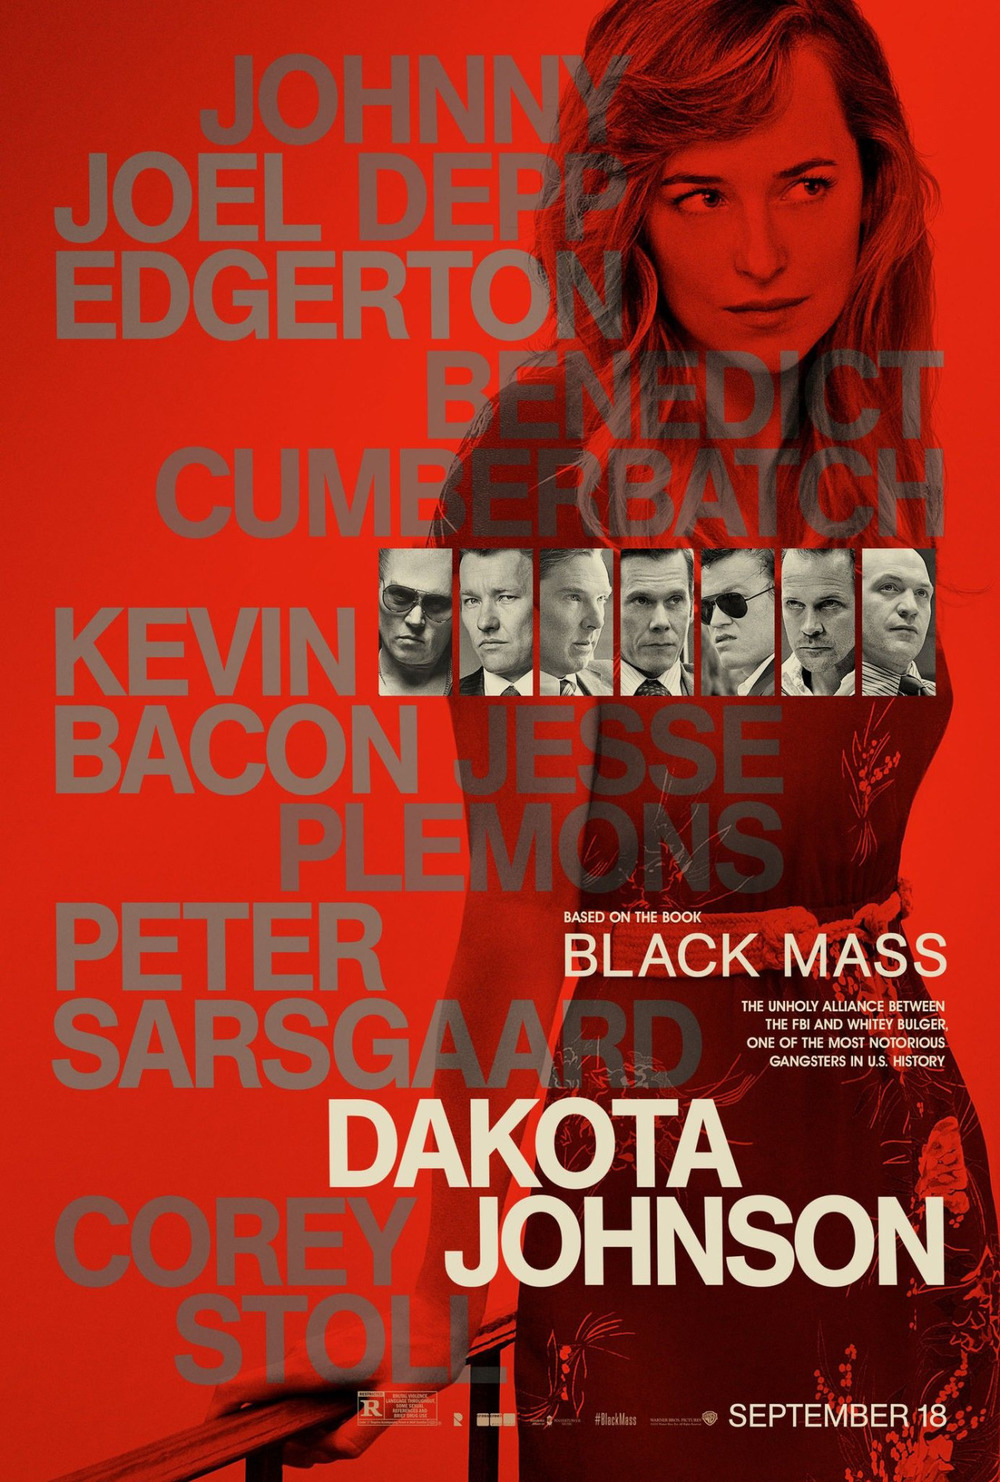 Black mass poster 2 Dakota Johnson